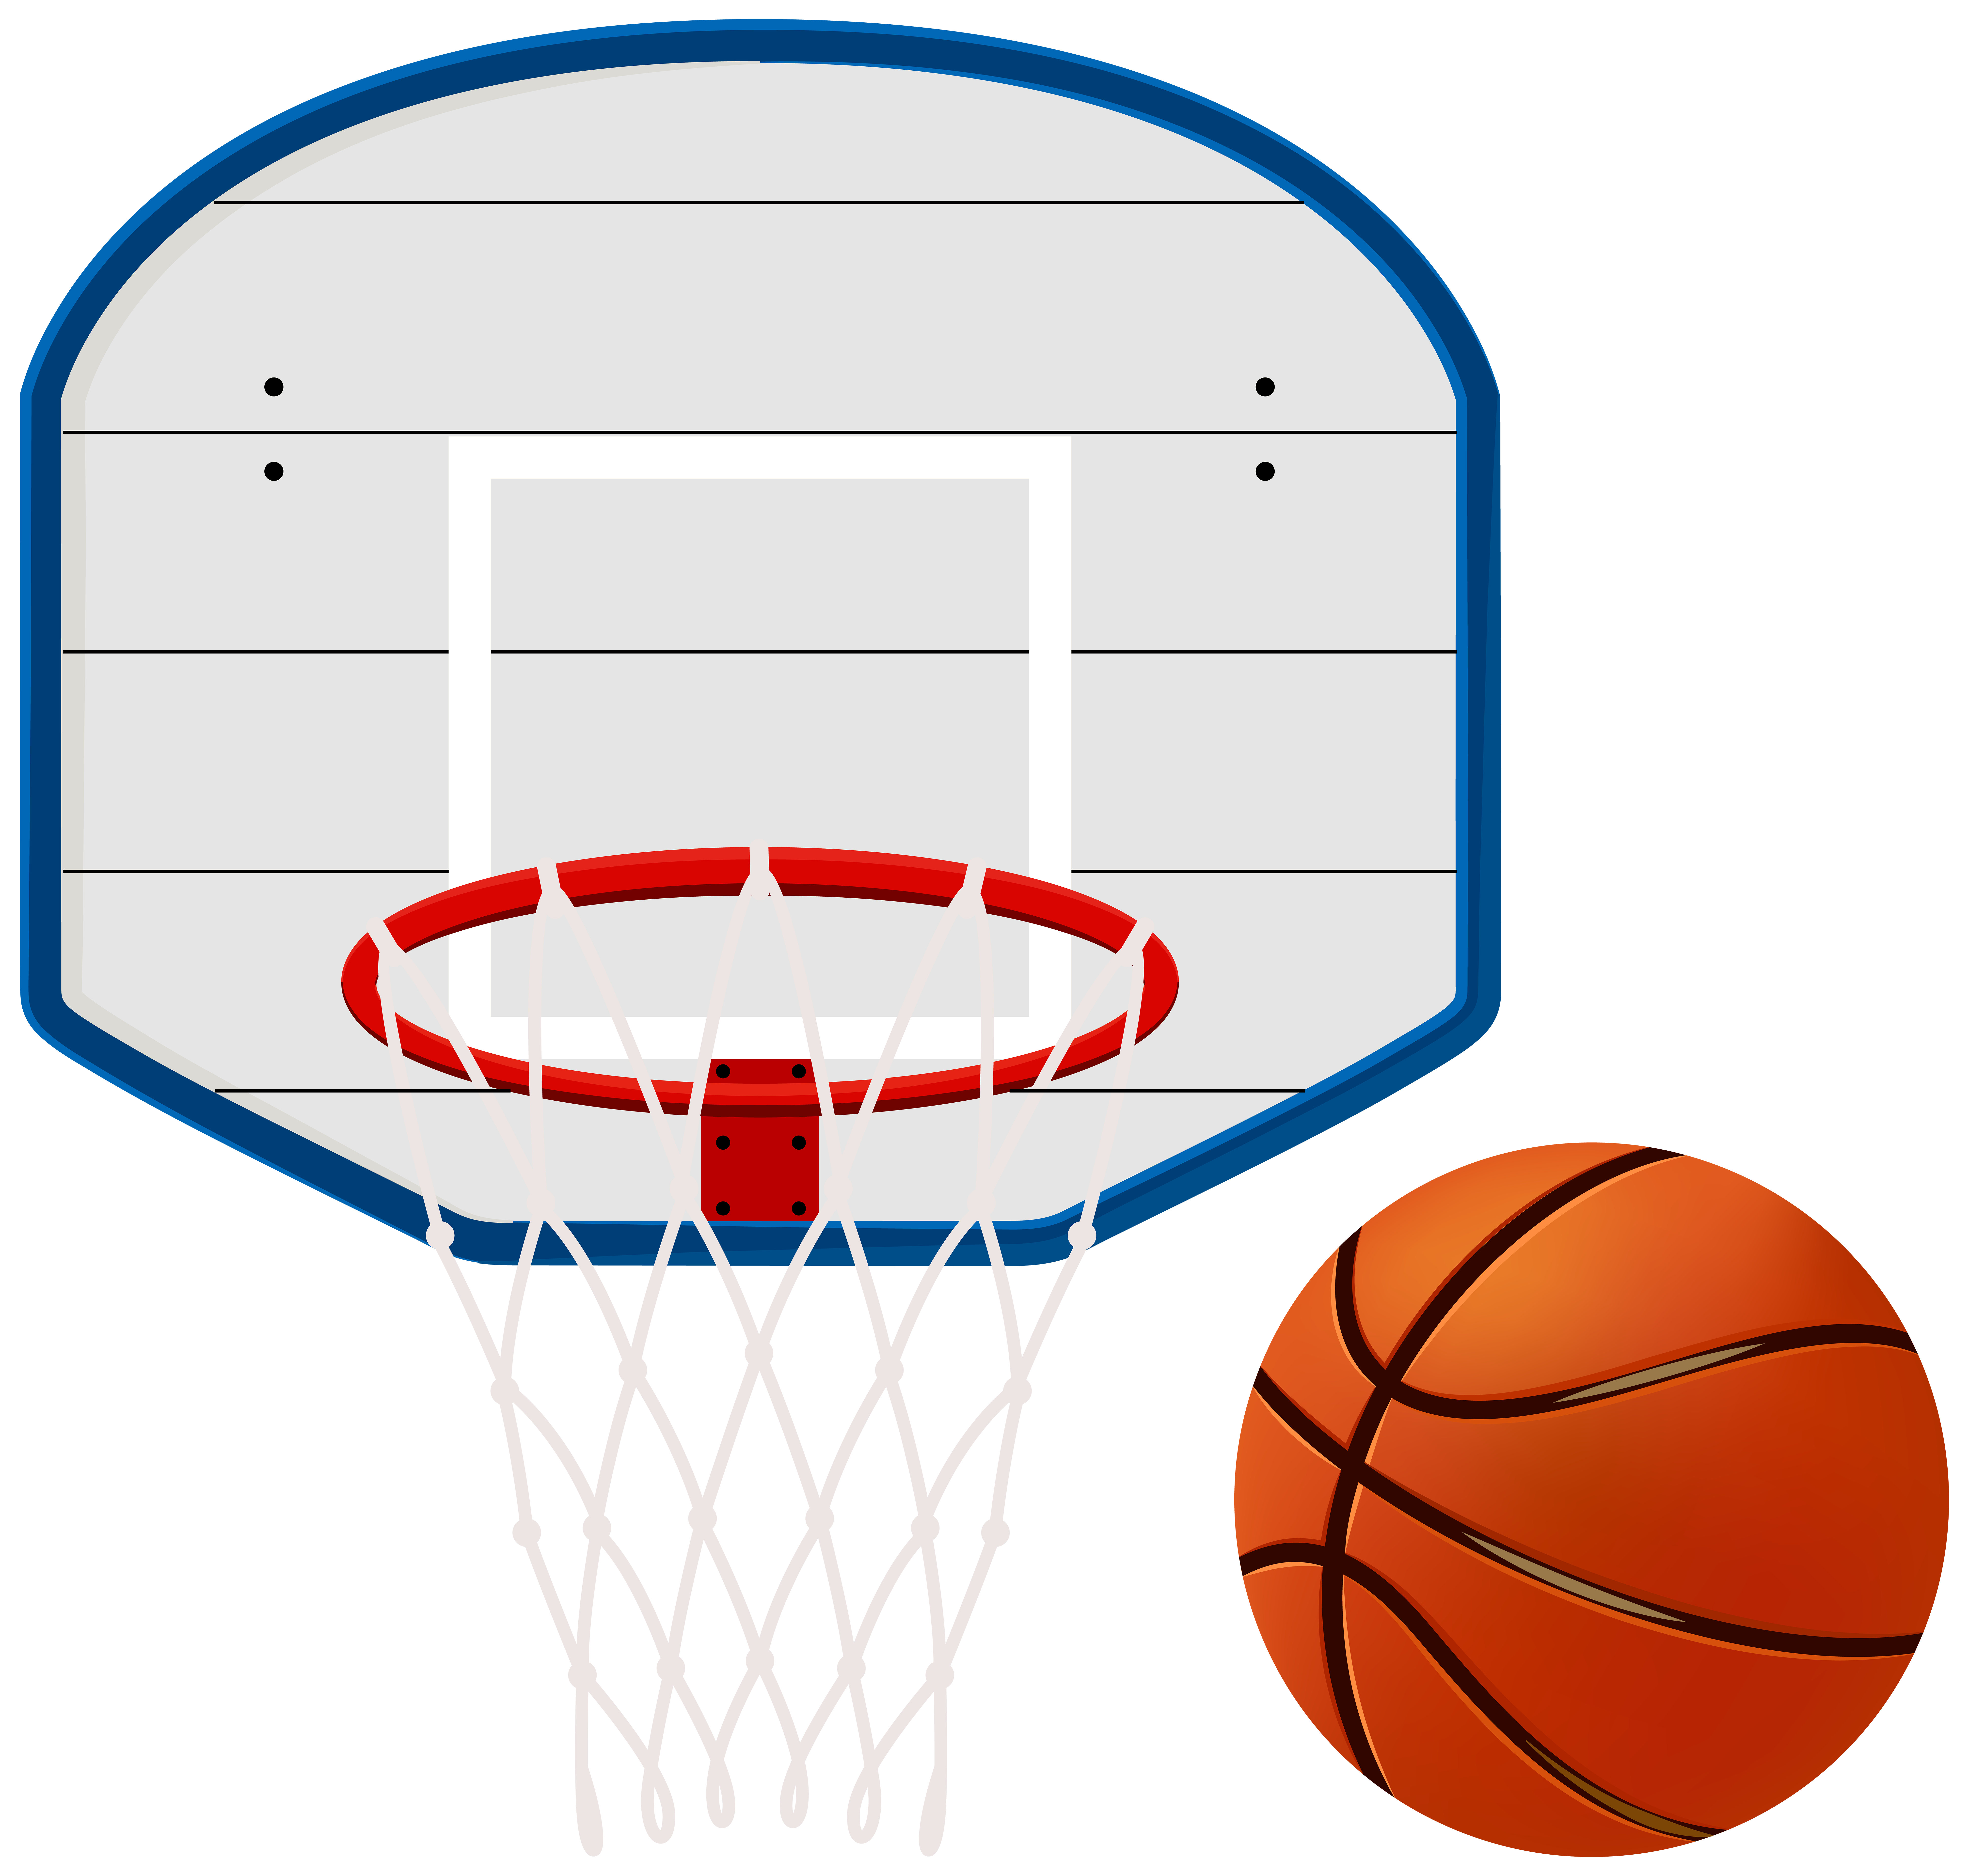 Basketball net clipart svg library Basketball Hoop Clip Art Image | Gallery Yopriceville - High ... svg library